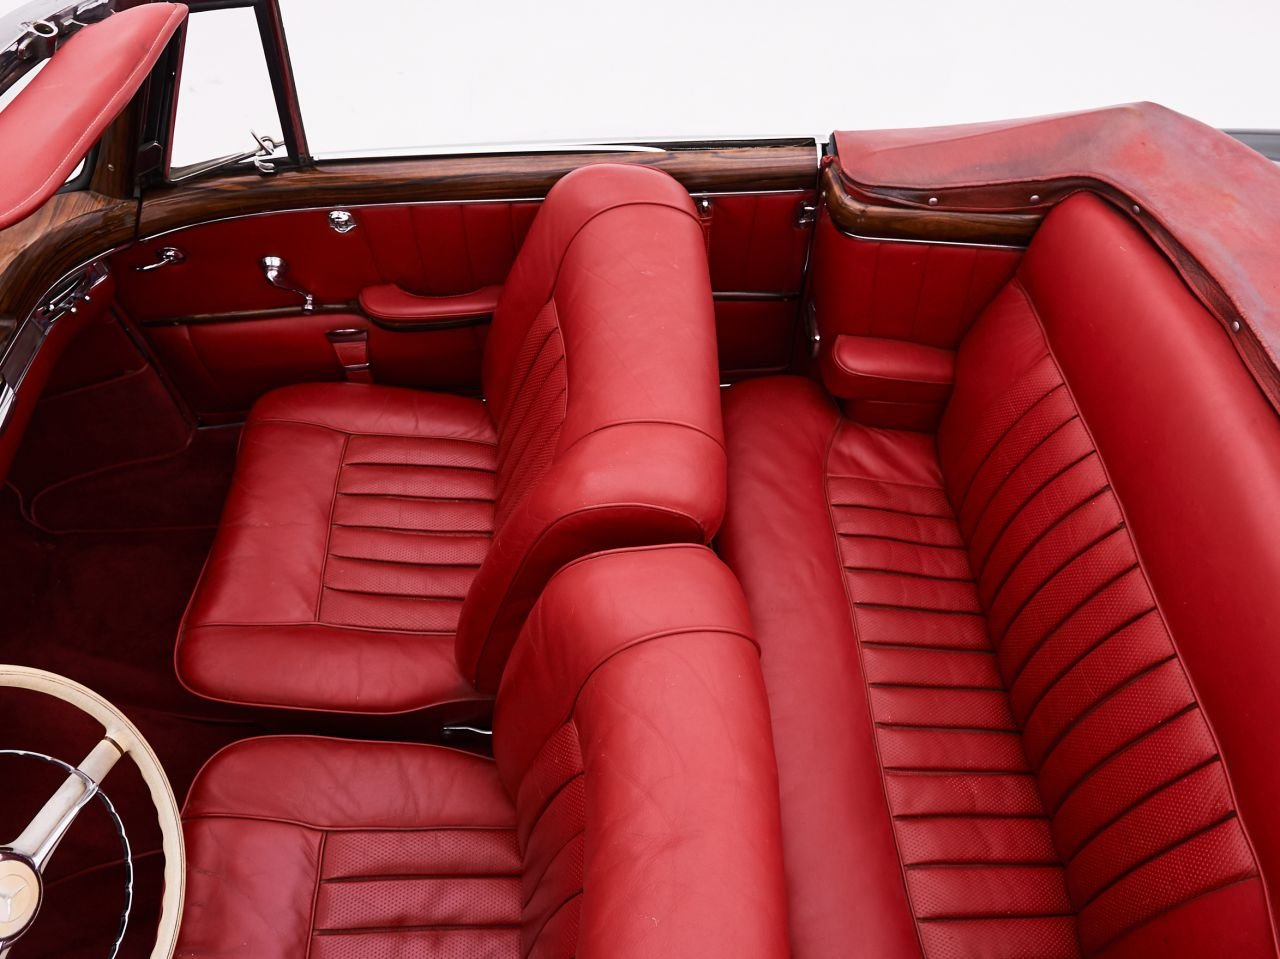 1959 MERCEDES 220S PONTON CABRIOLET for sale For Sale by Auction (picture 3 of 6)